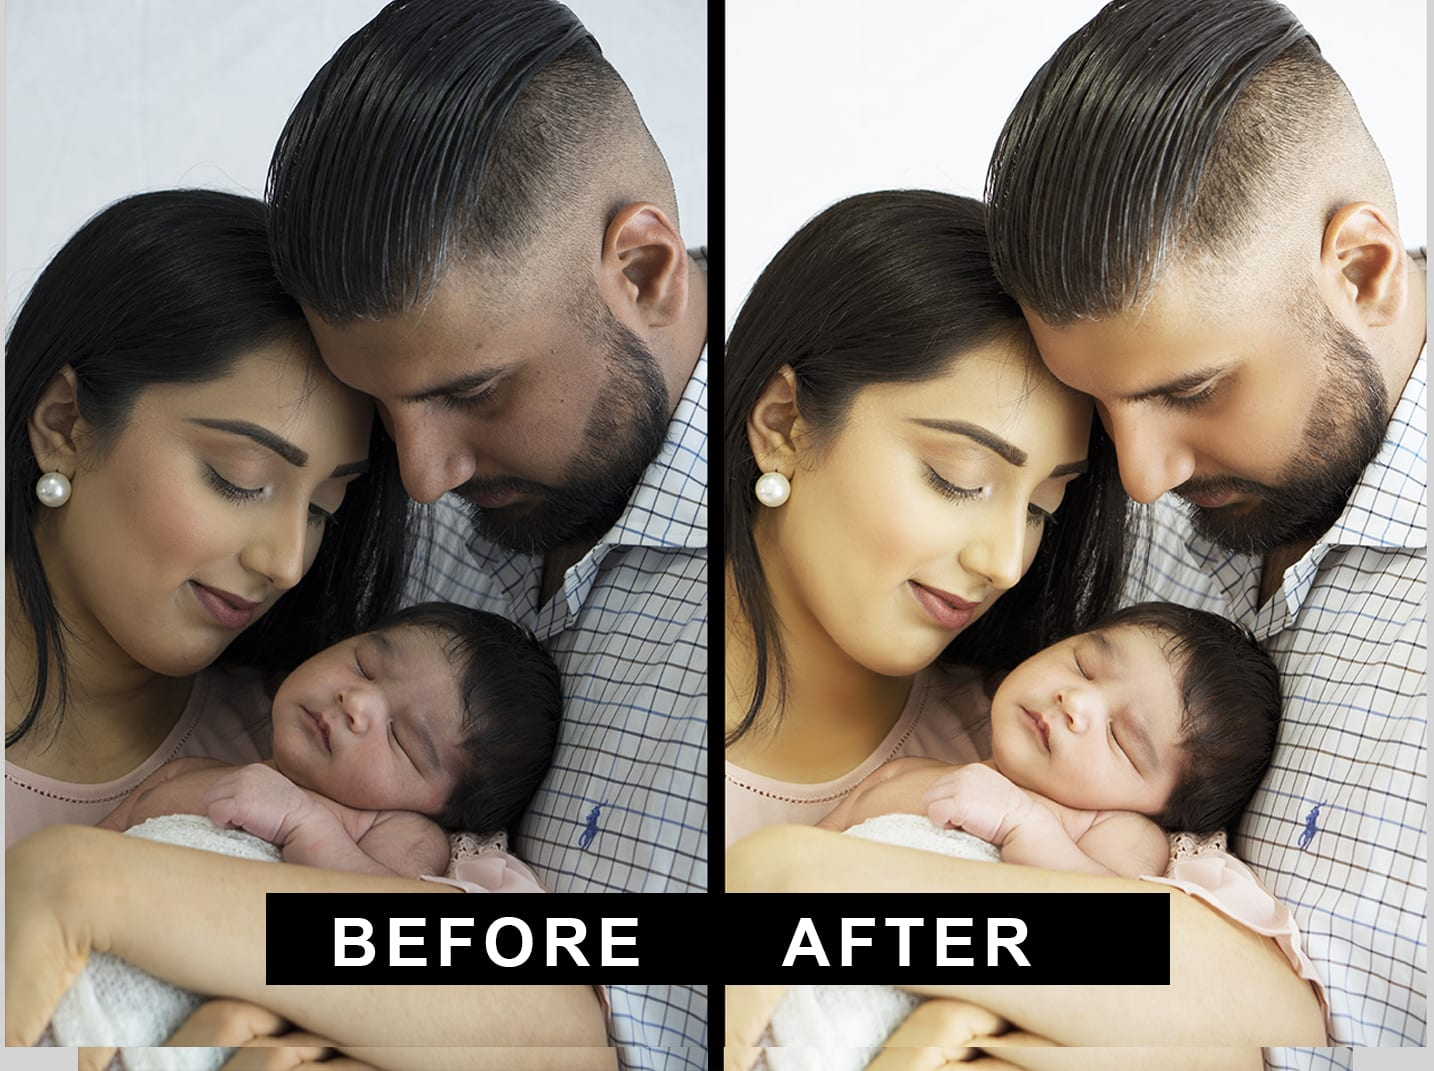 I will professionally edit your images in photoshop within 12 hours